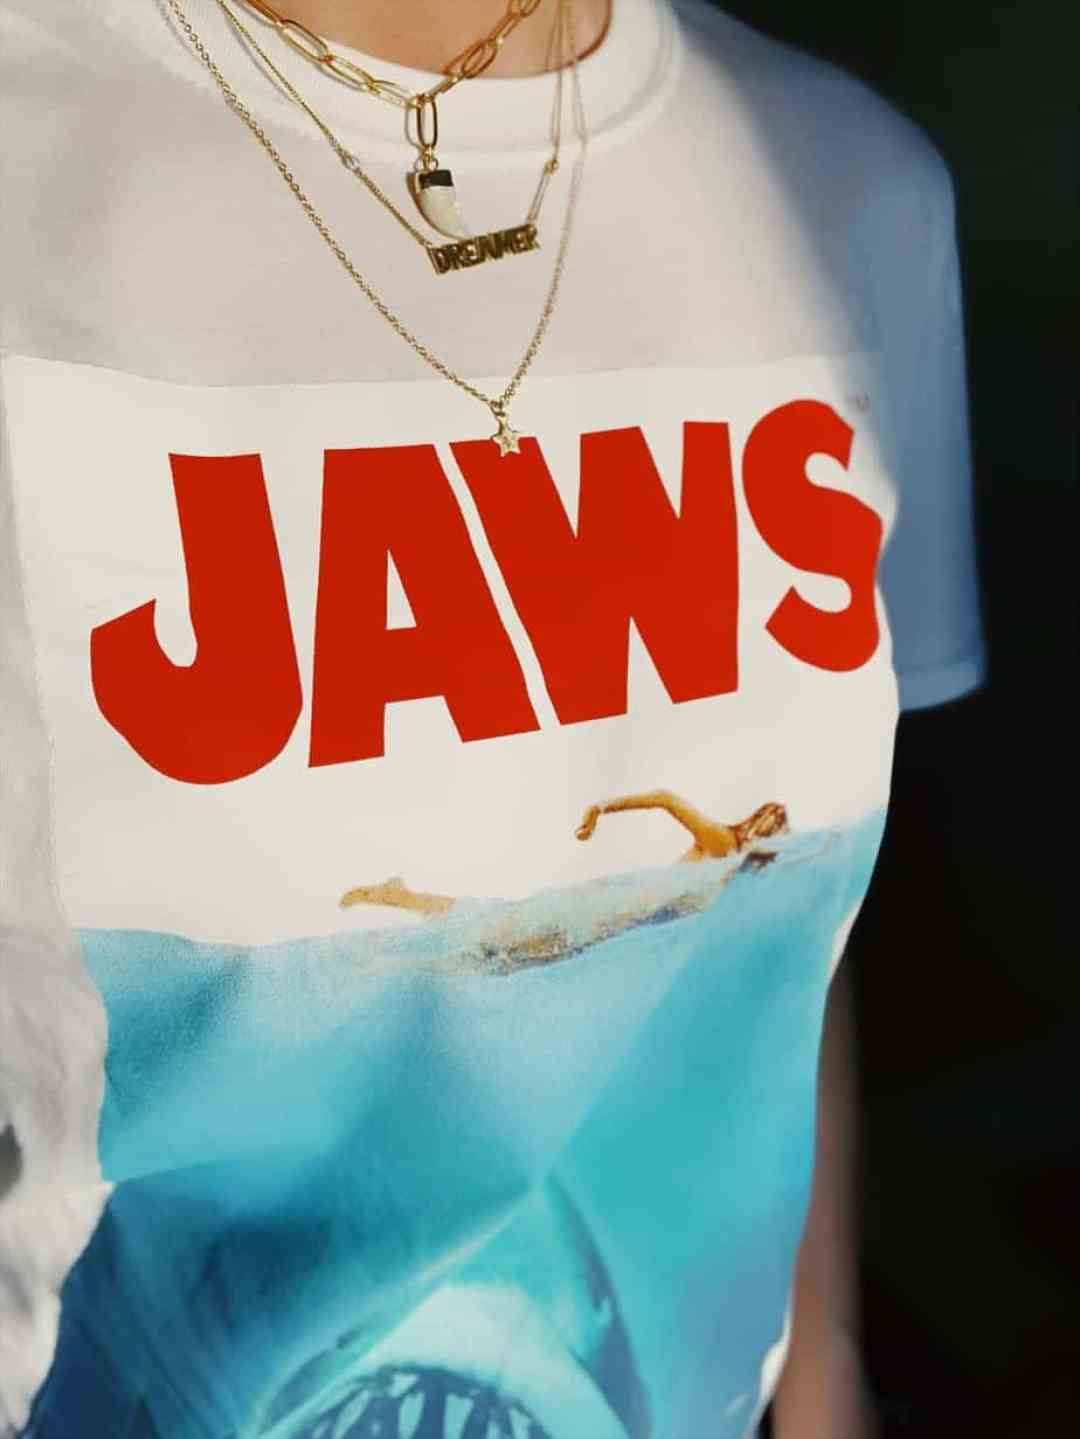 Jaws shirt and layering necklaces